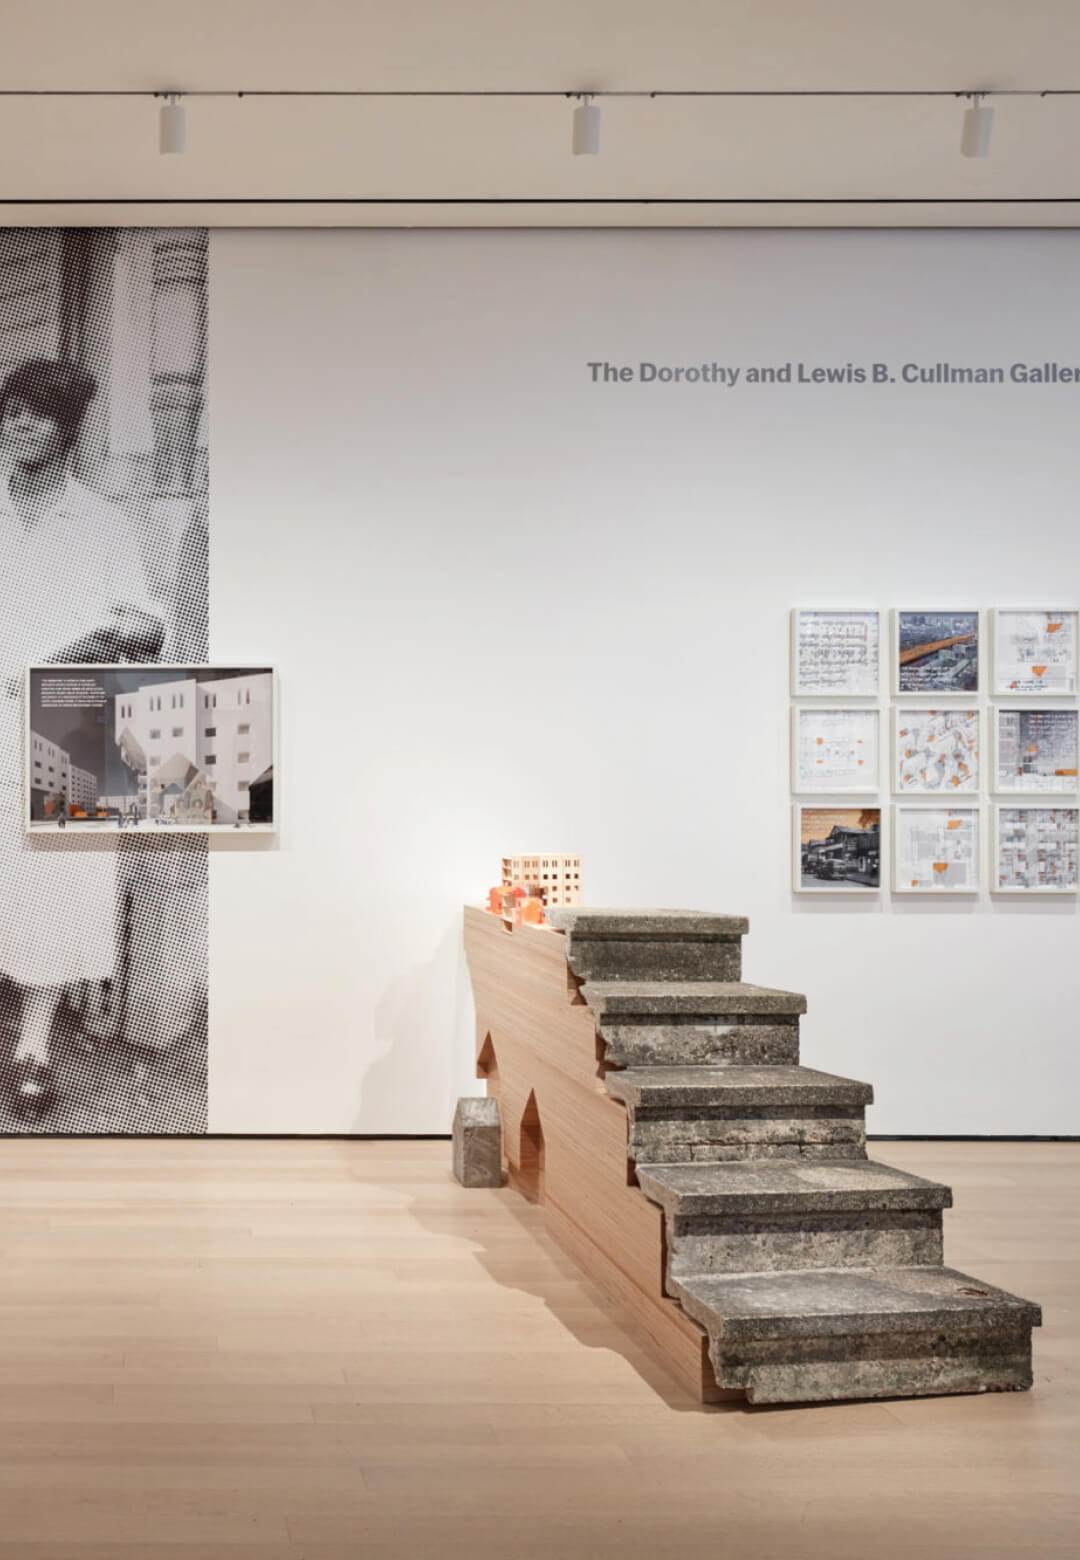 Installation view of Reconstructions: Architecture and Blackness in America at The Museum of Modern Art, New York | Reconstructions: Architecture and Blackness in America | STIRworld